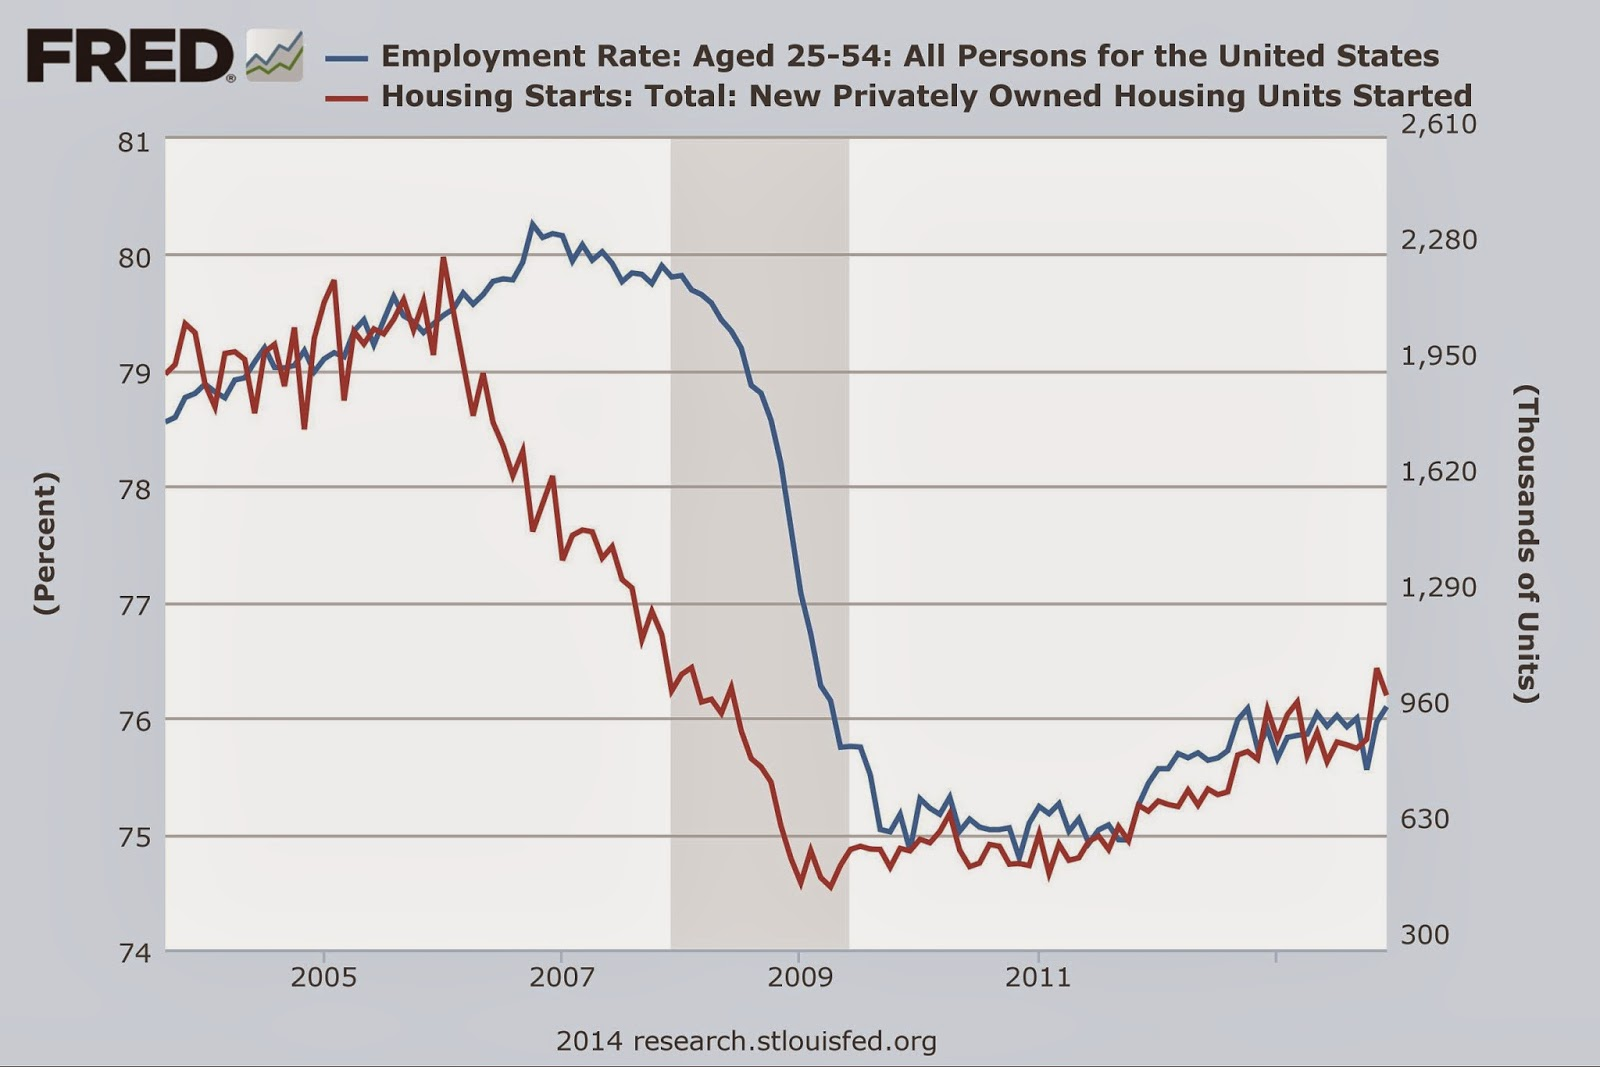 Chart of Employment Rate: Aged 25-54: All Persons for the United States and Housing Starts: Total: New Privately Owned Housing Units Started during the Great Recession / Lesser Depression